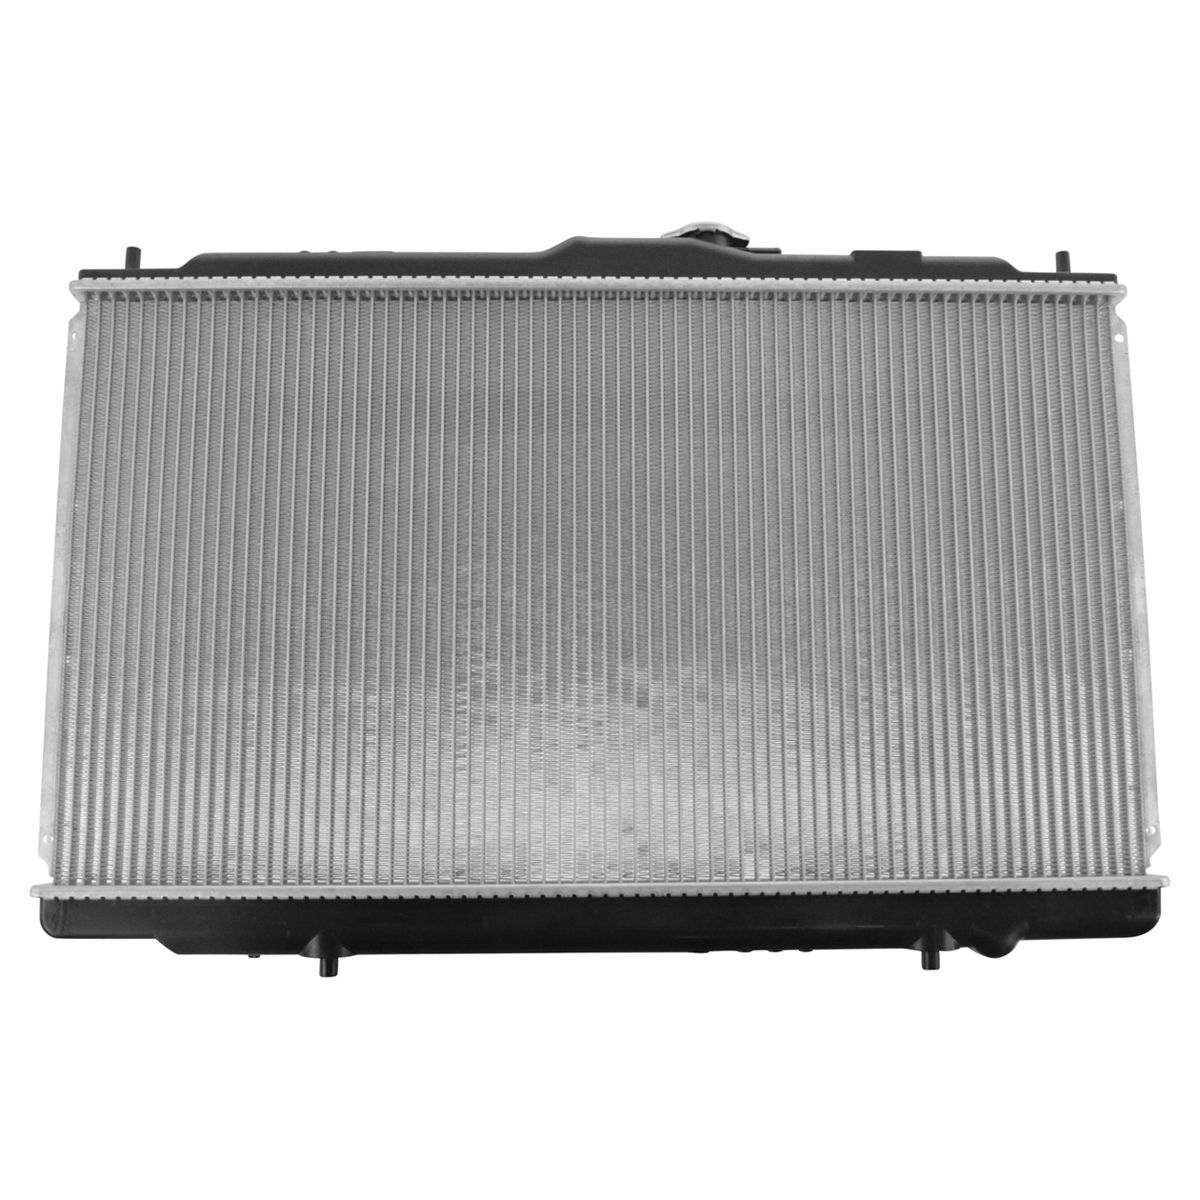 Radiator Assembly Aluminum Core Direct Fit For Acura TL CL